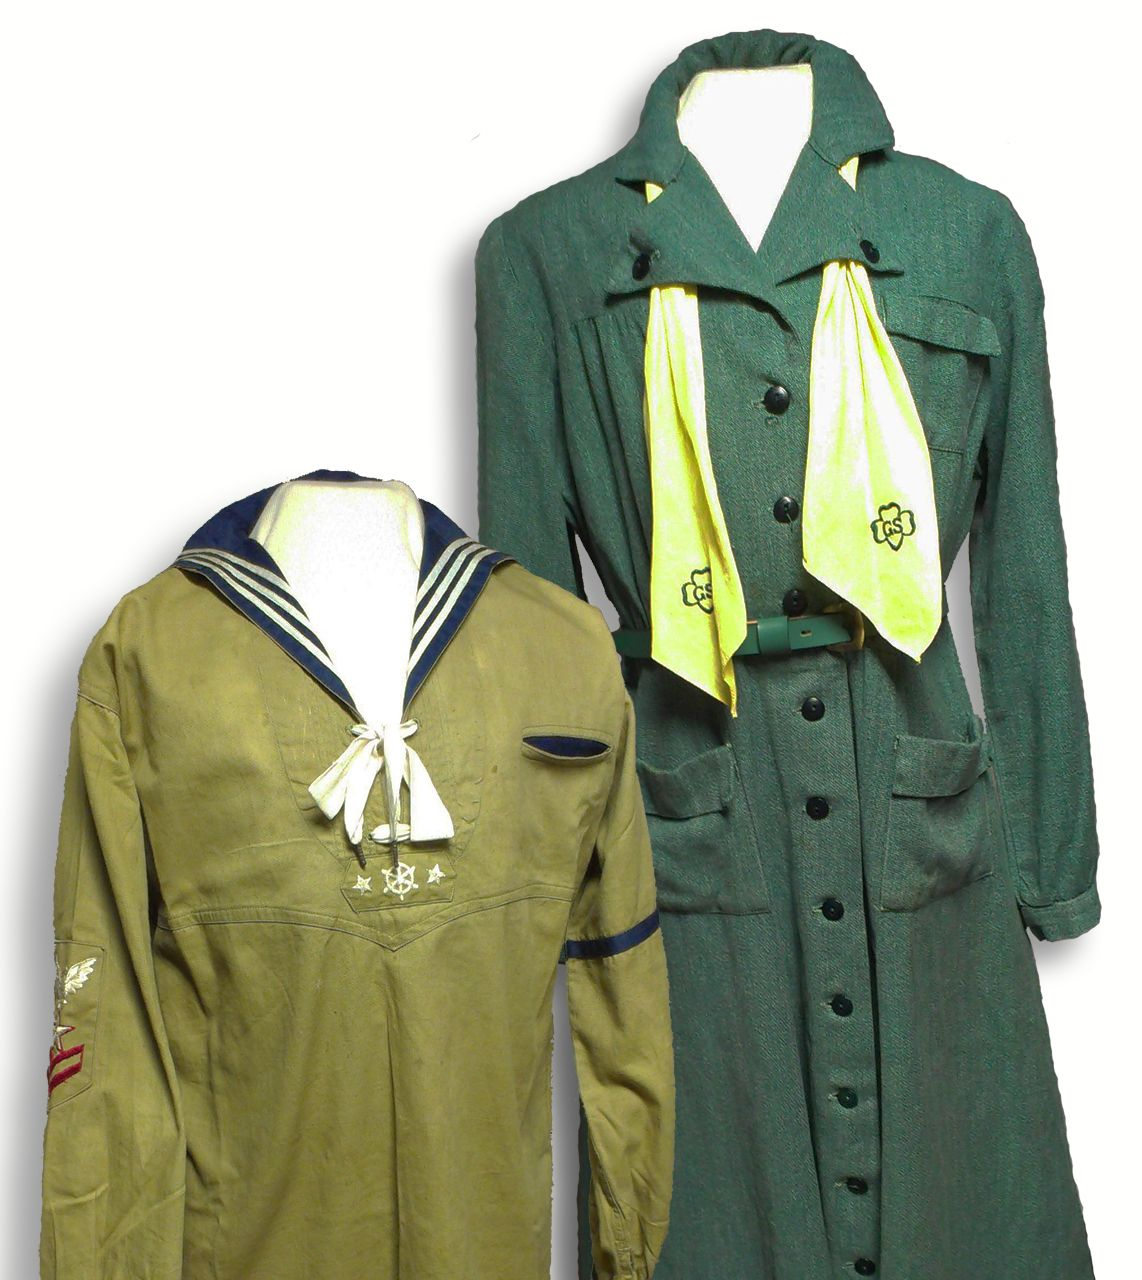 C Uniform Shirt Worn By A Member Of The First Girl